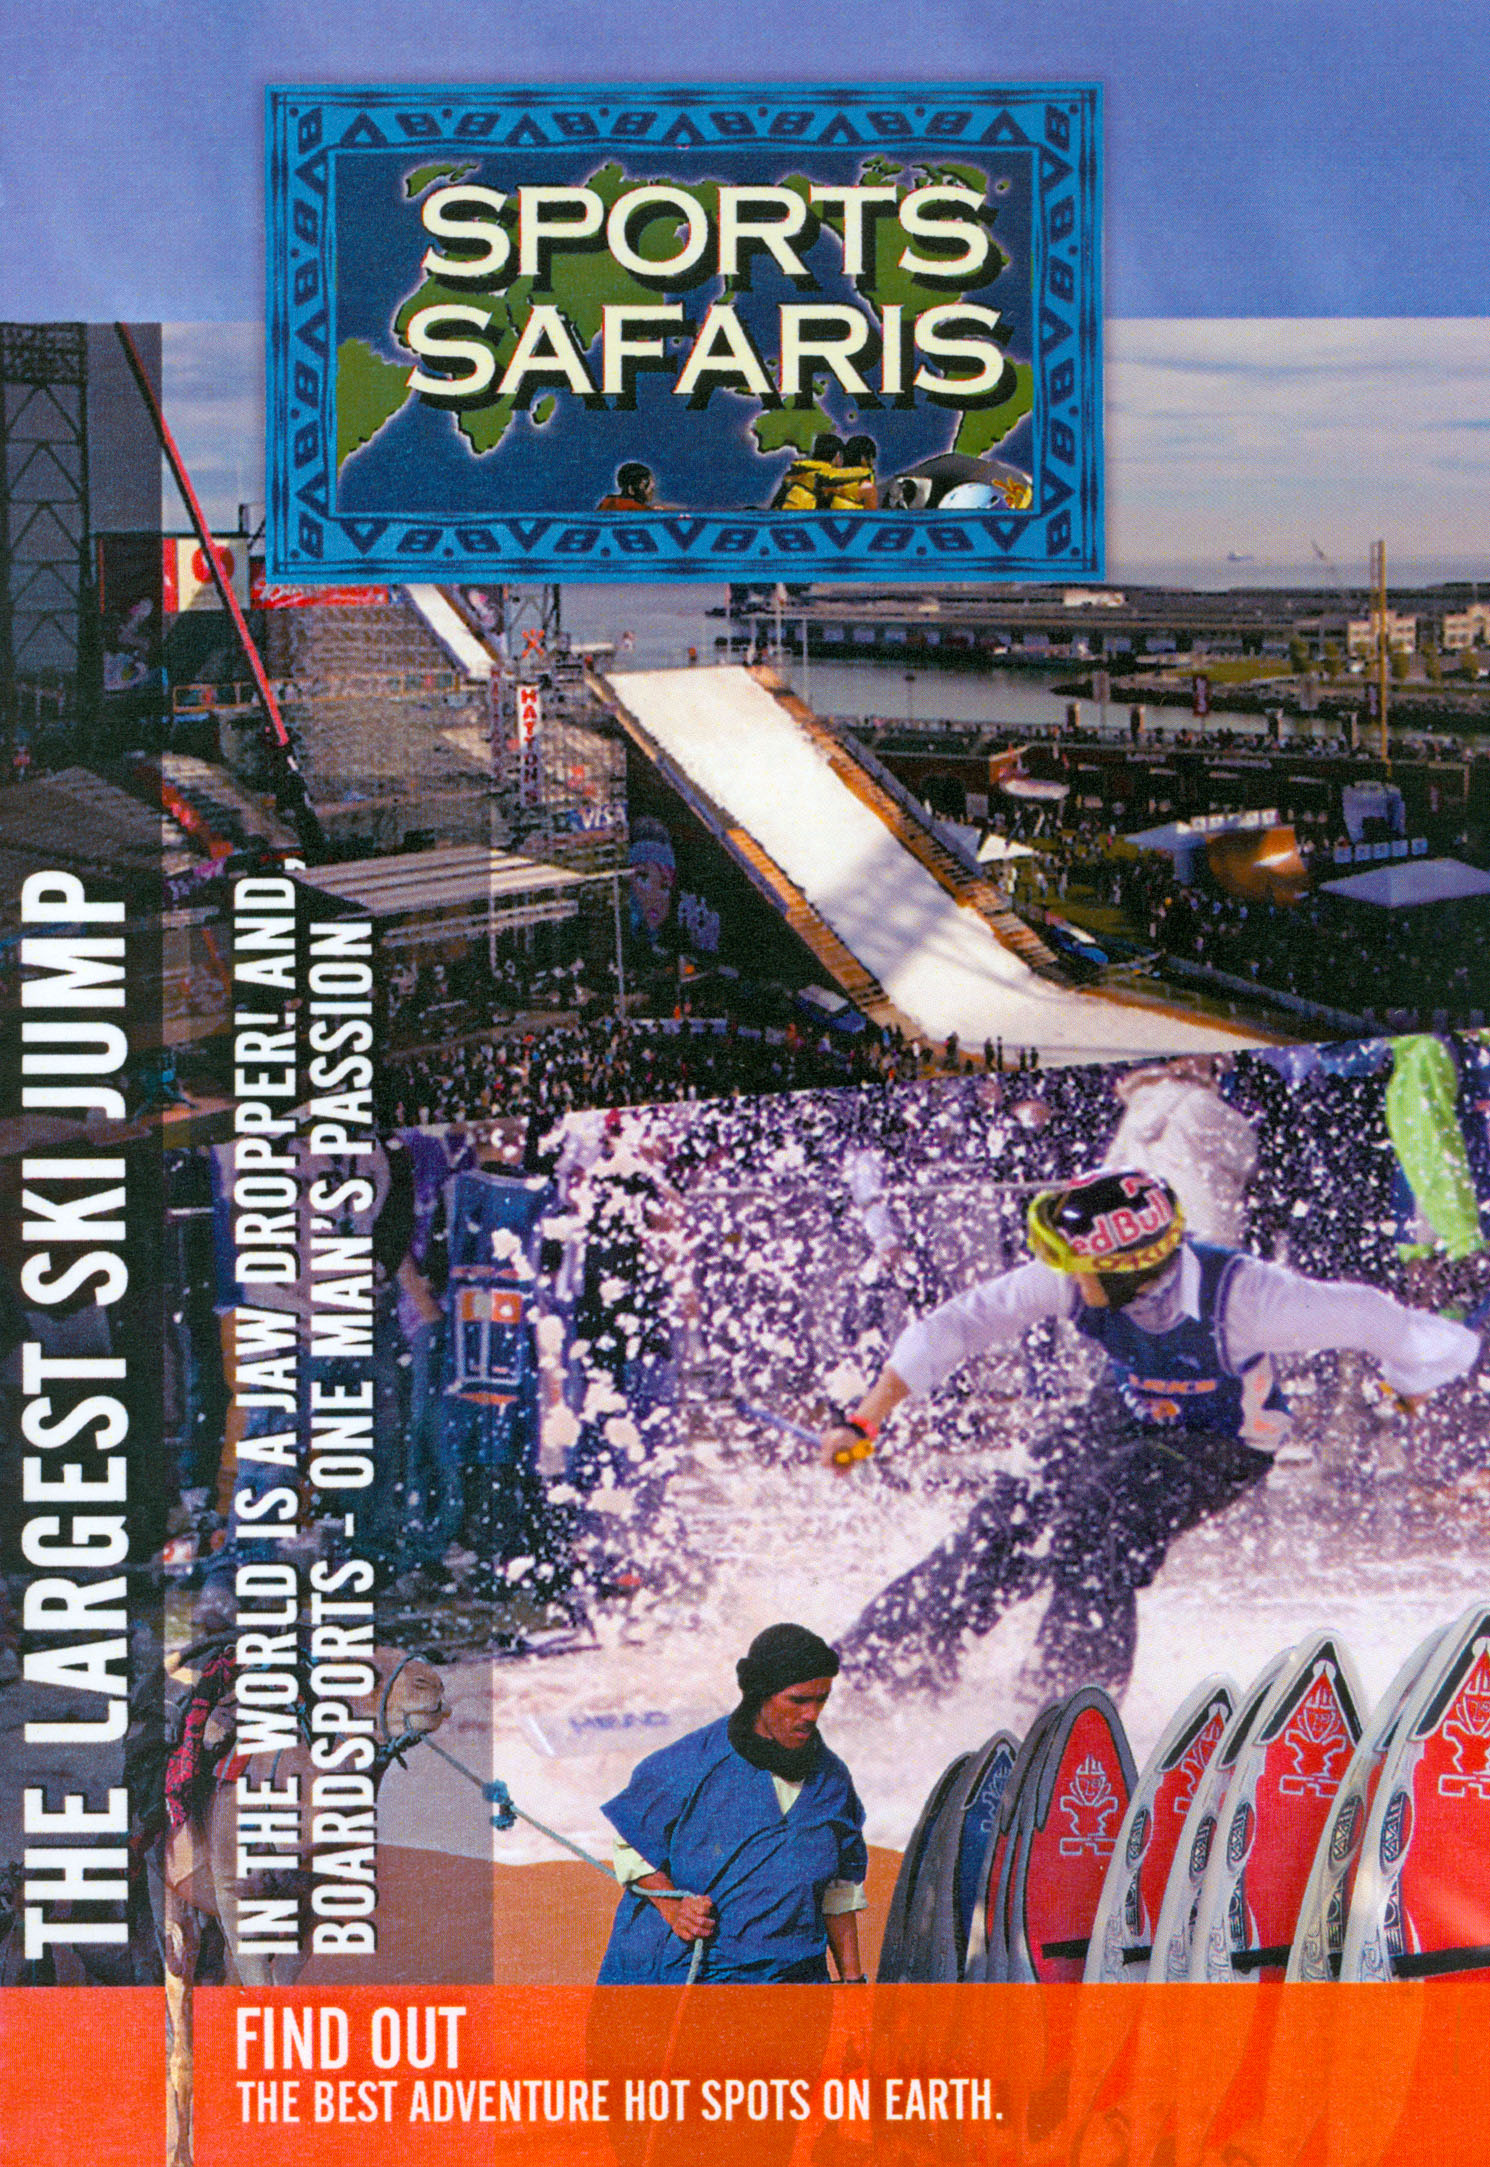 Sports Safaris: The Largest Ski Jump in the World Is a Jaw Dropper! And, Boardsports - One Man's Ad